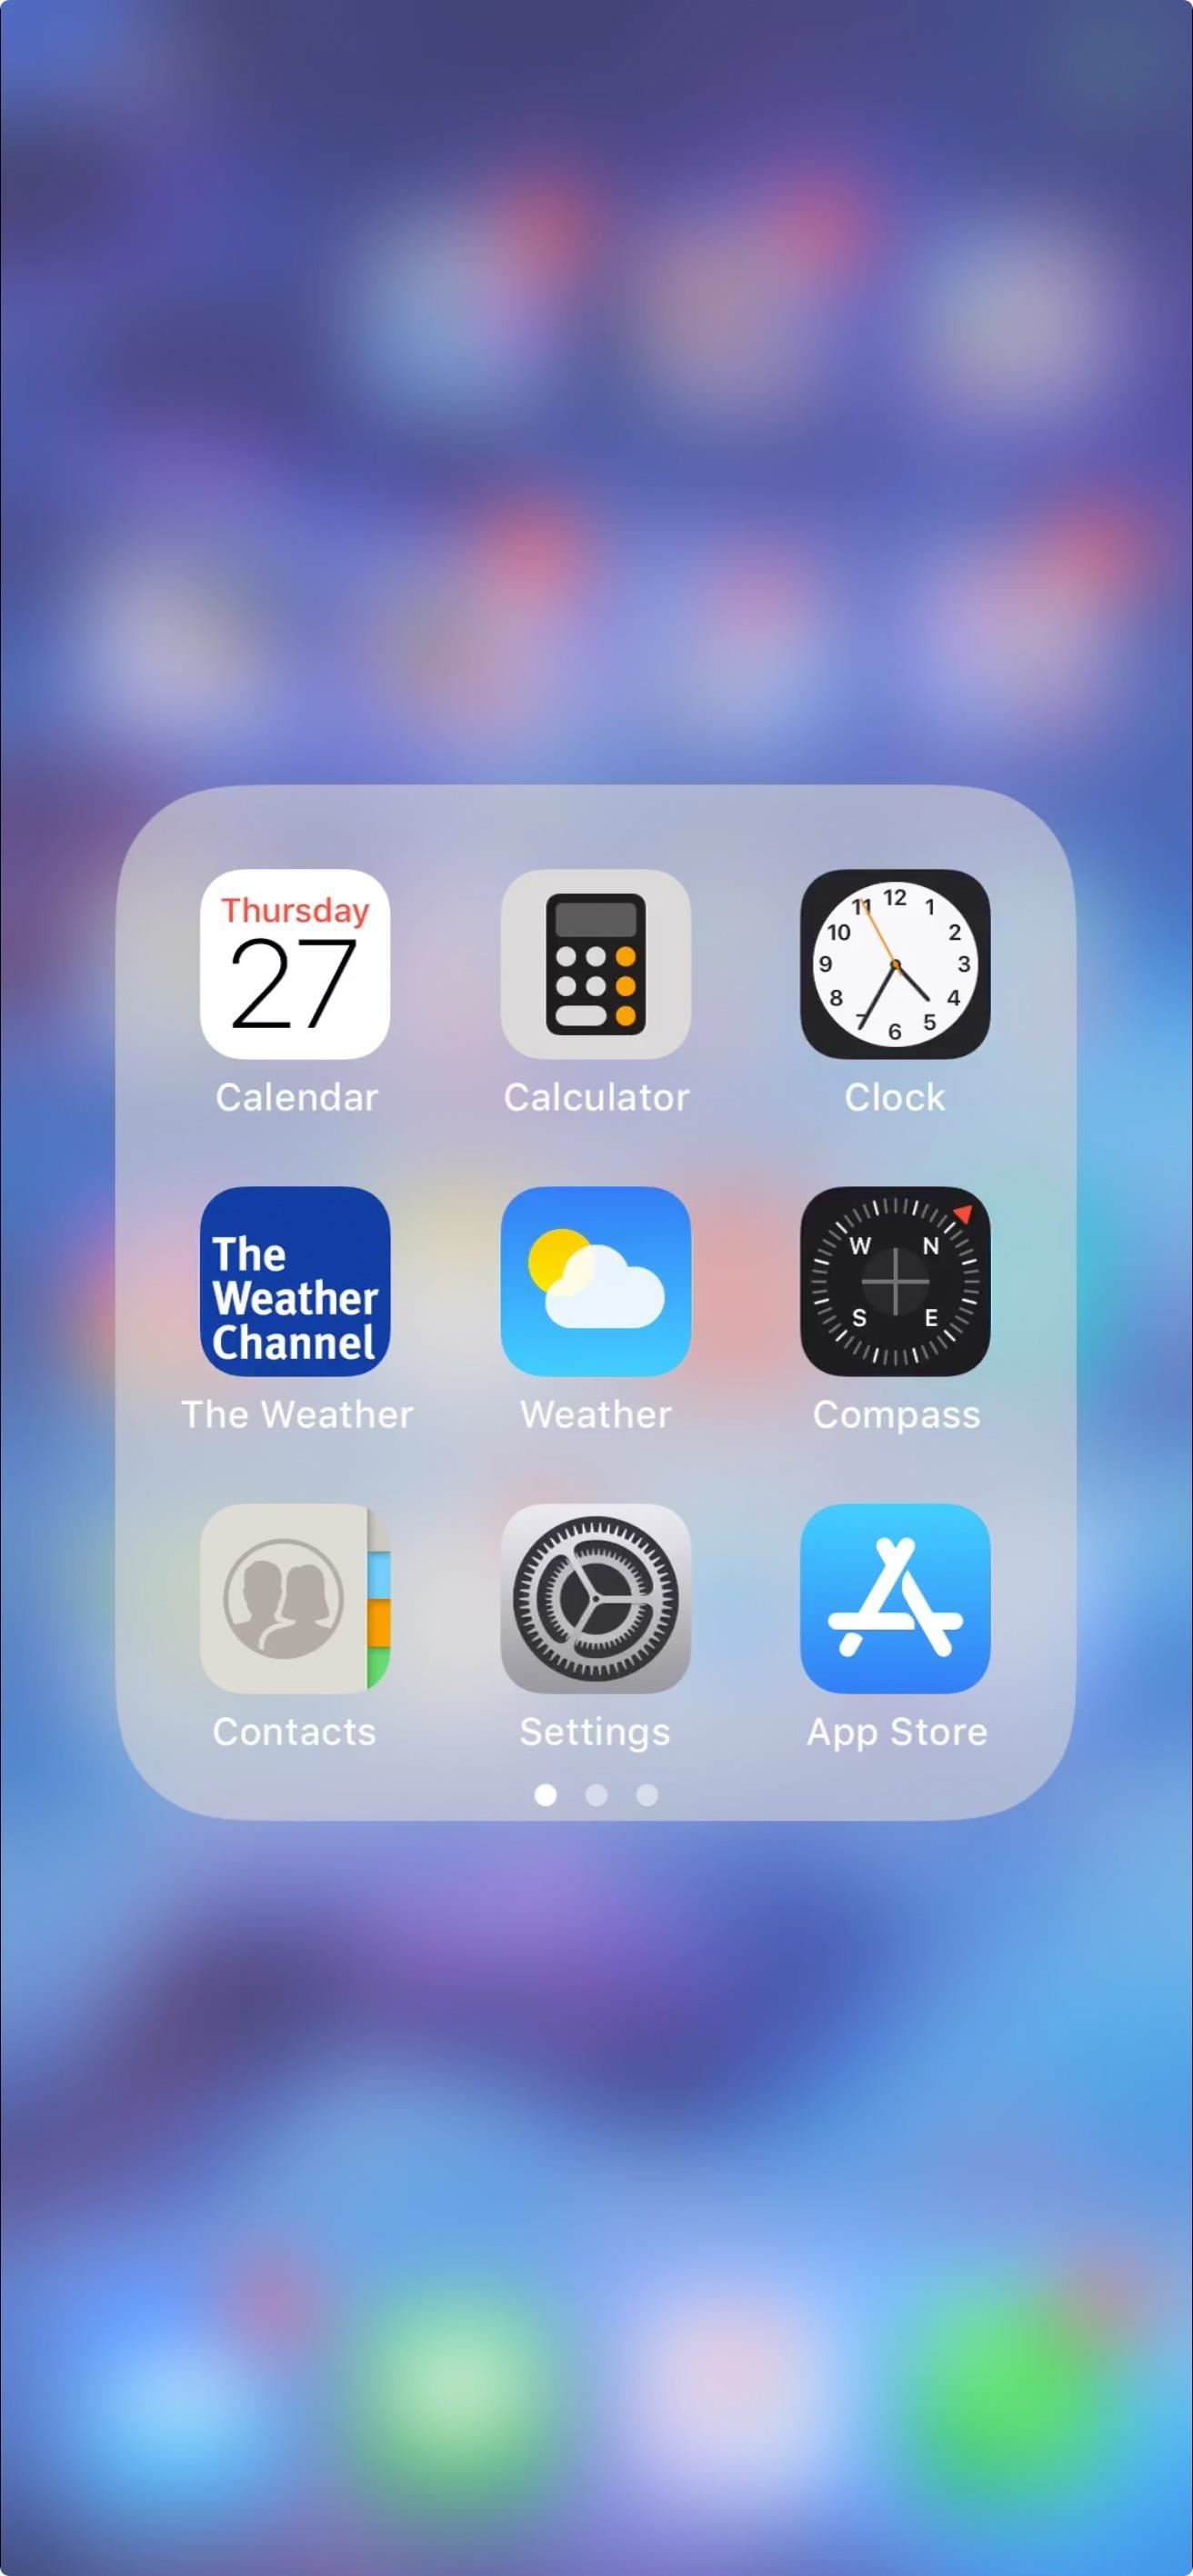 How to Unlock Apple's 'Dark Mode' in iOS 11, 12 & 13 for iPhone